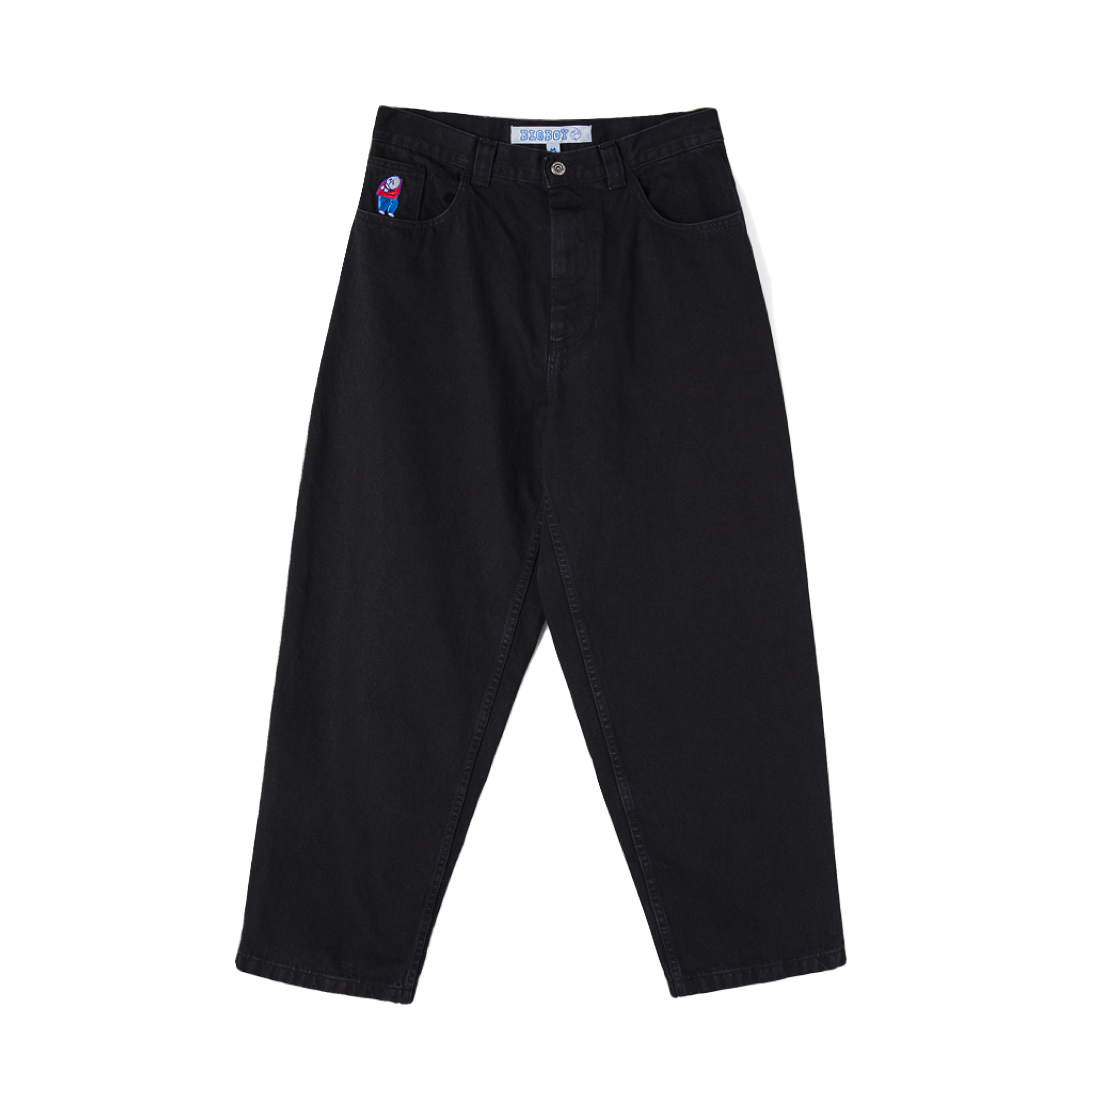 【POLAR SKATE CO.】Big Boy Jeans - Pitch Black